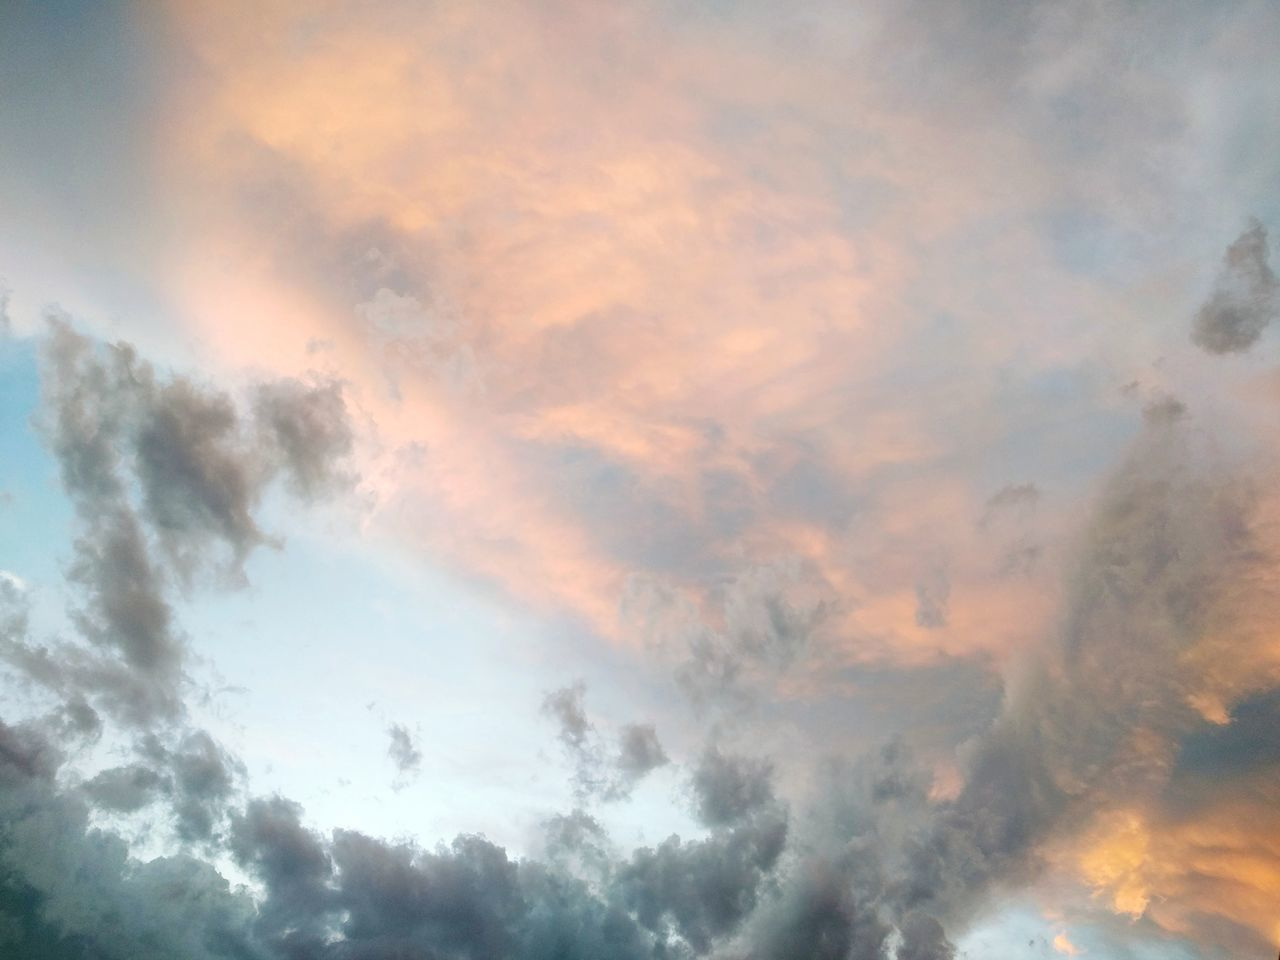 cloud - sky, beauty in nature, sky, nature, dramatic sky, atmospheric mood, scenics, weather, cloudscape, sunset, no people, tranquil scene, backgrounds, sky only, low angle view, tranquility, outdoors, day, multi colored